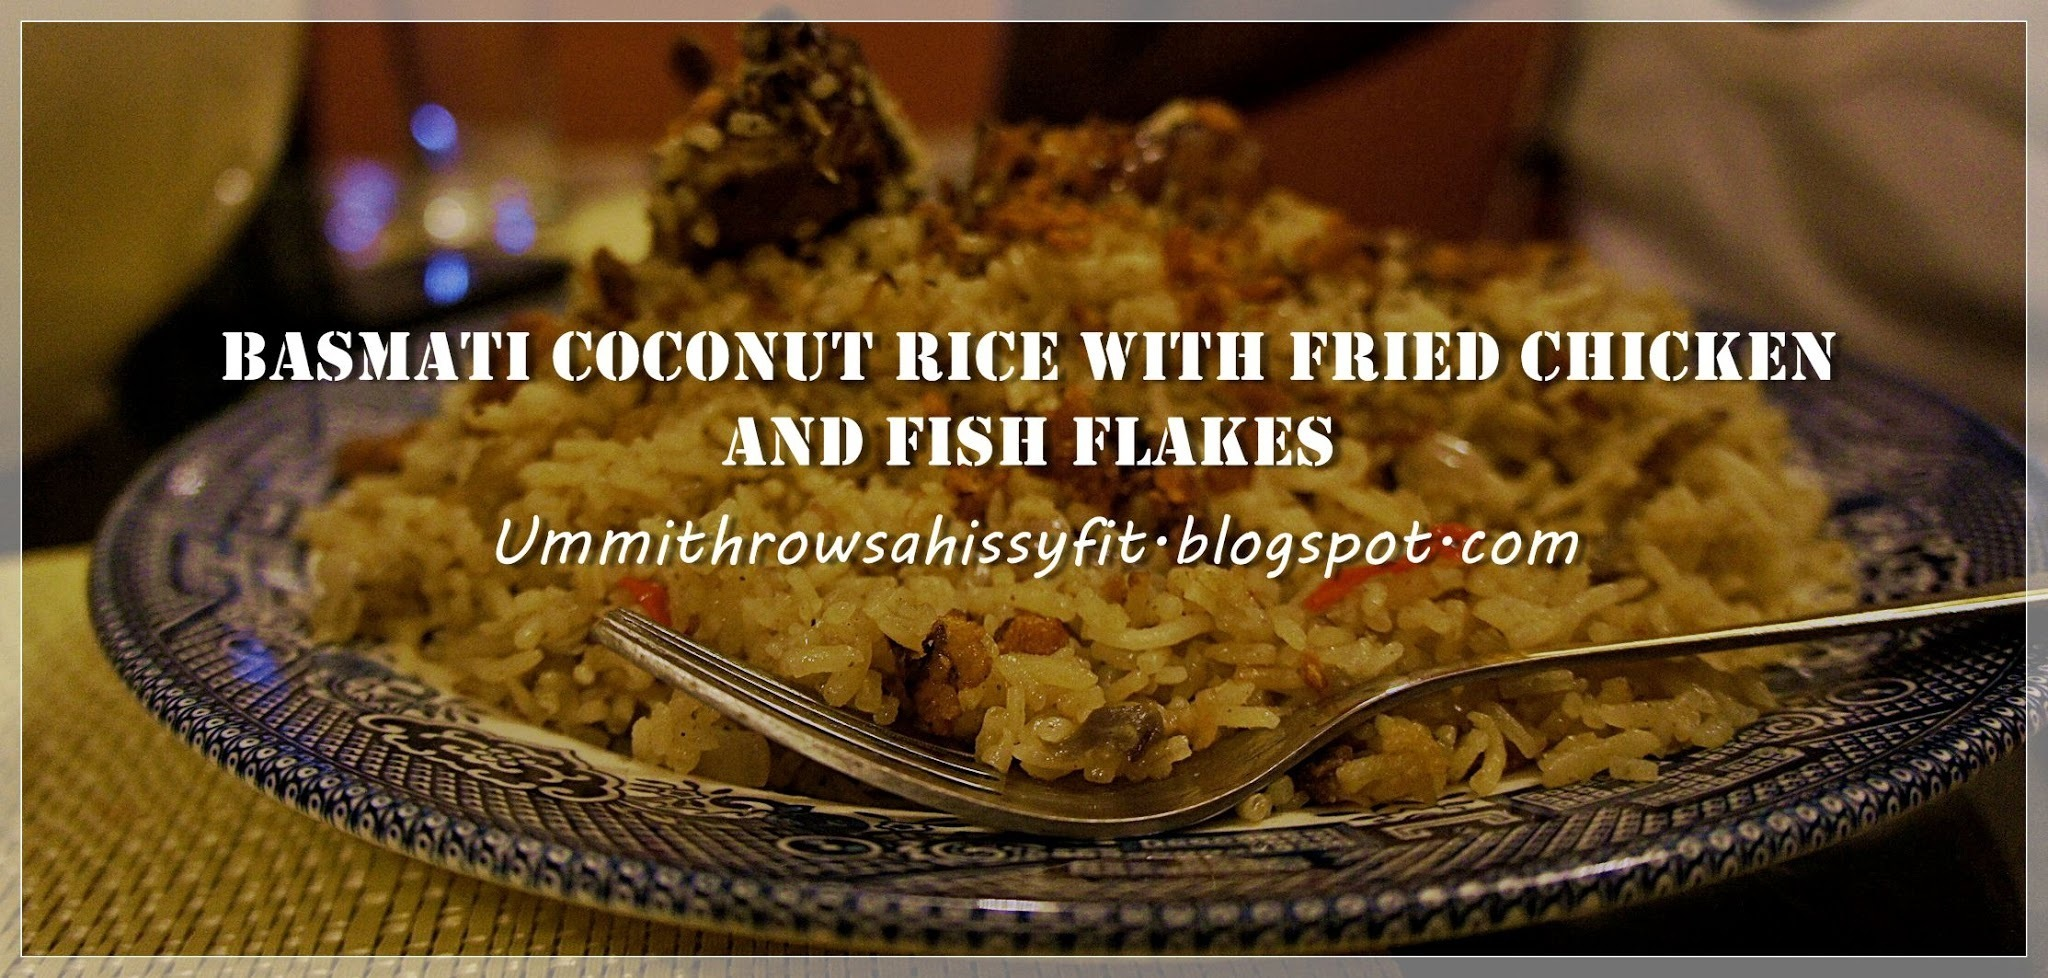 Basmati Coconut Rice with Fried Chicken and Fish Flakes